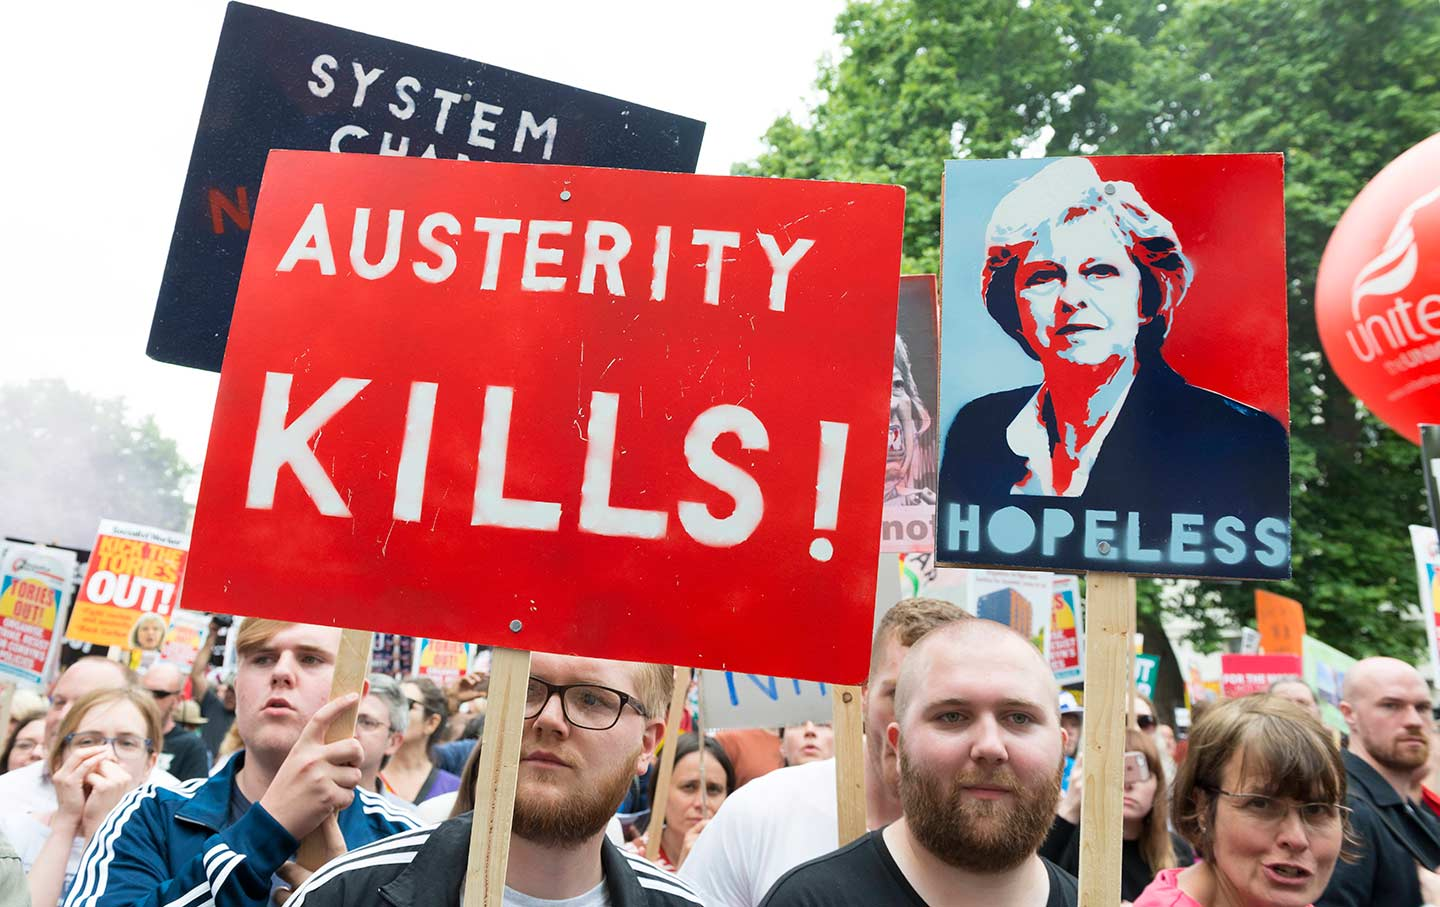 Protesters gathered in London to rally for an end to austerity in July 2017.  (Ik Aldama / picture-alliance / dpa/ AP Images)